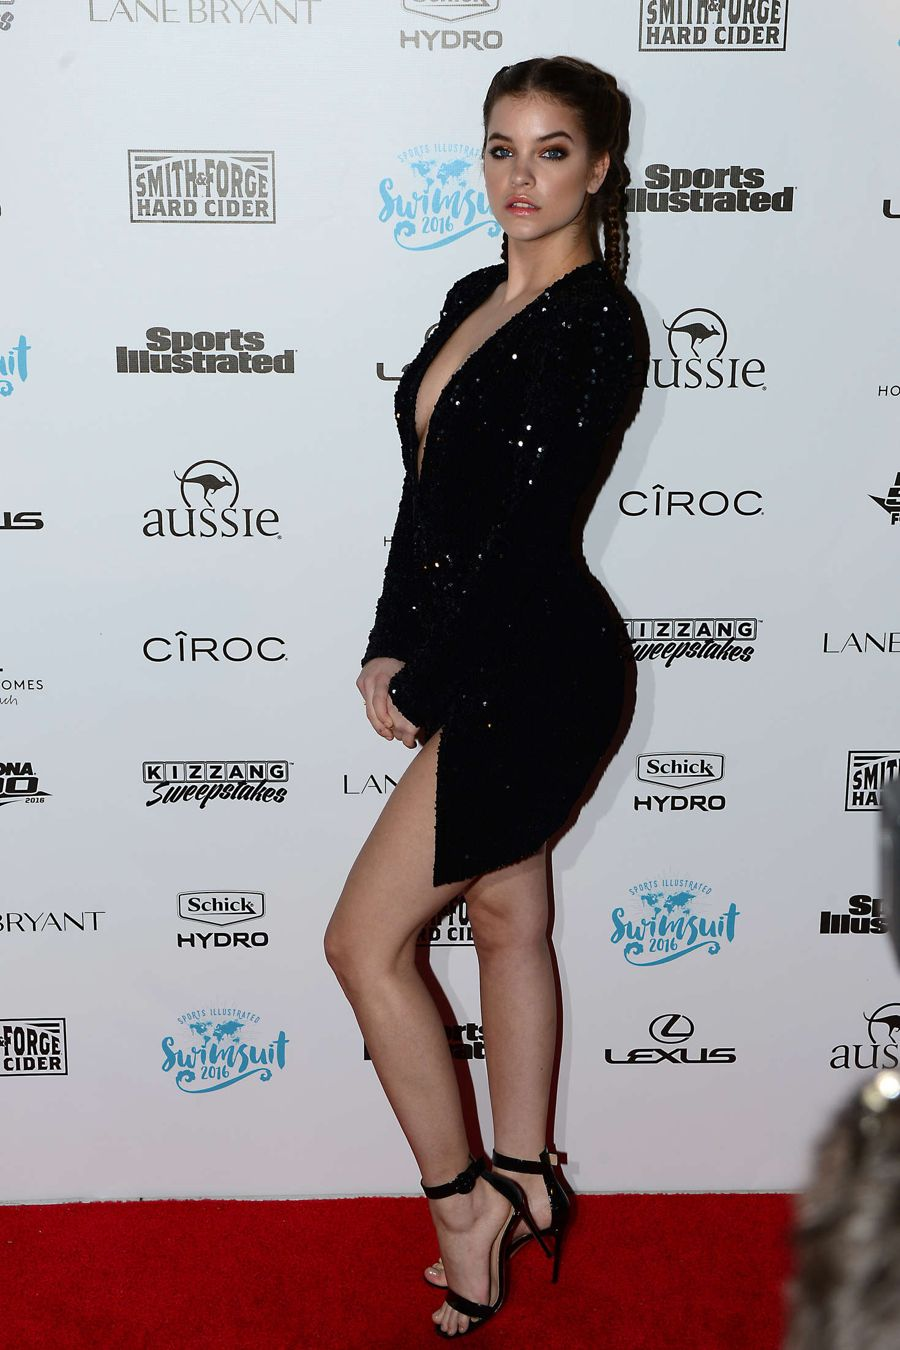 Barbara Palvin - Sports Illustrated 2016 Red Carpet